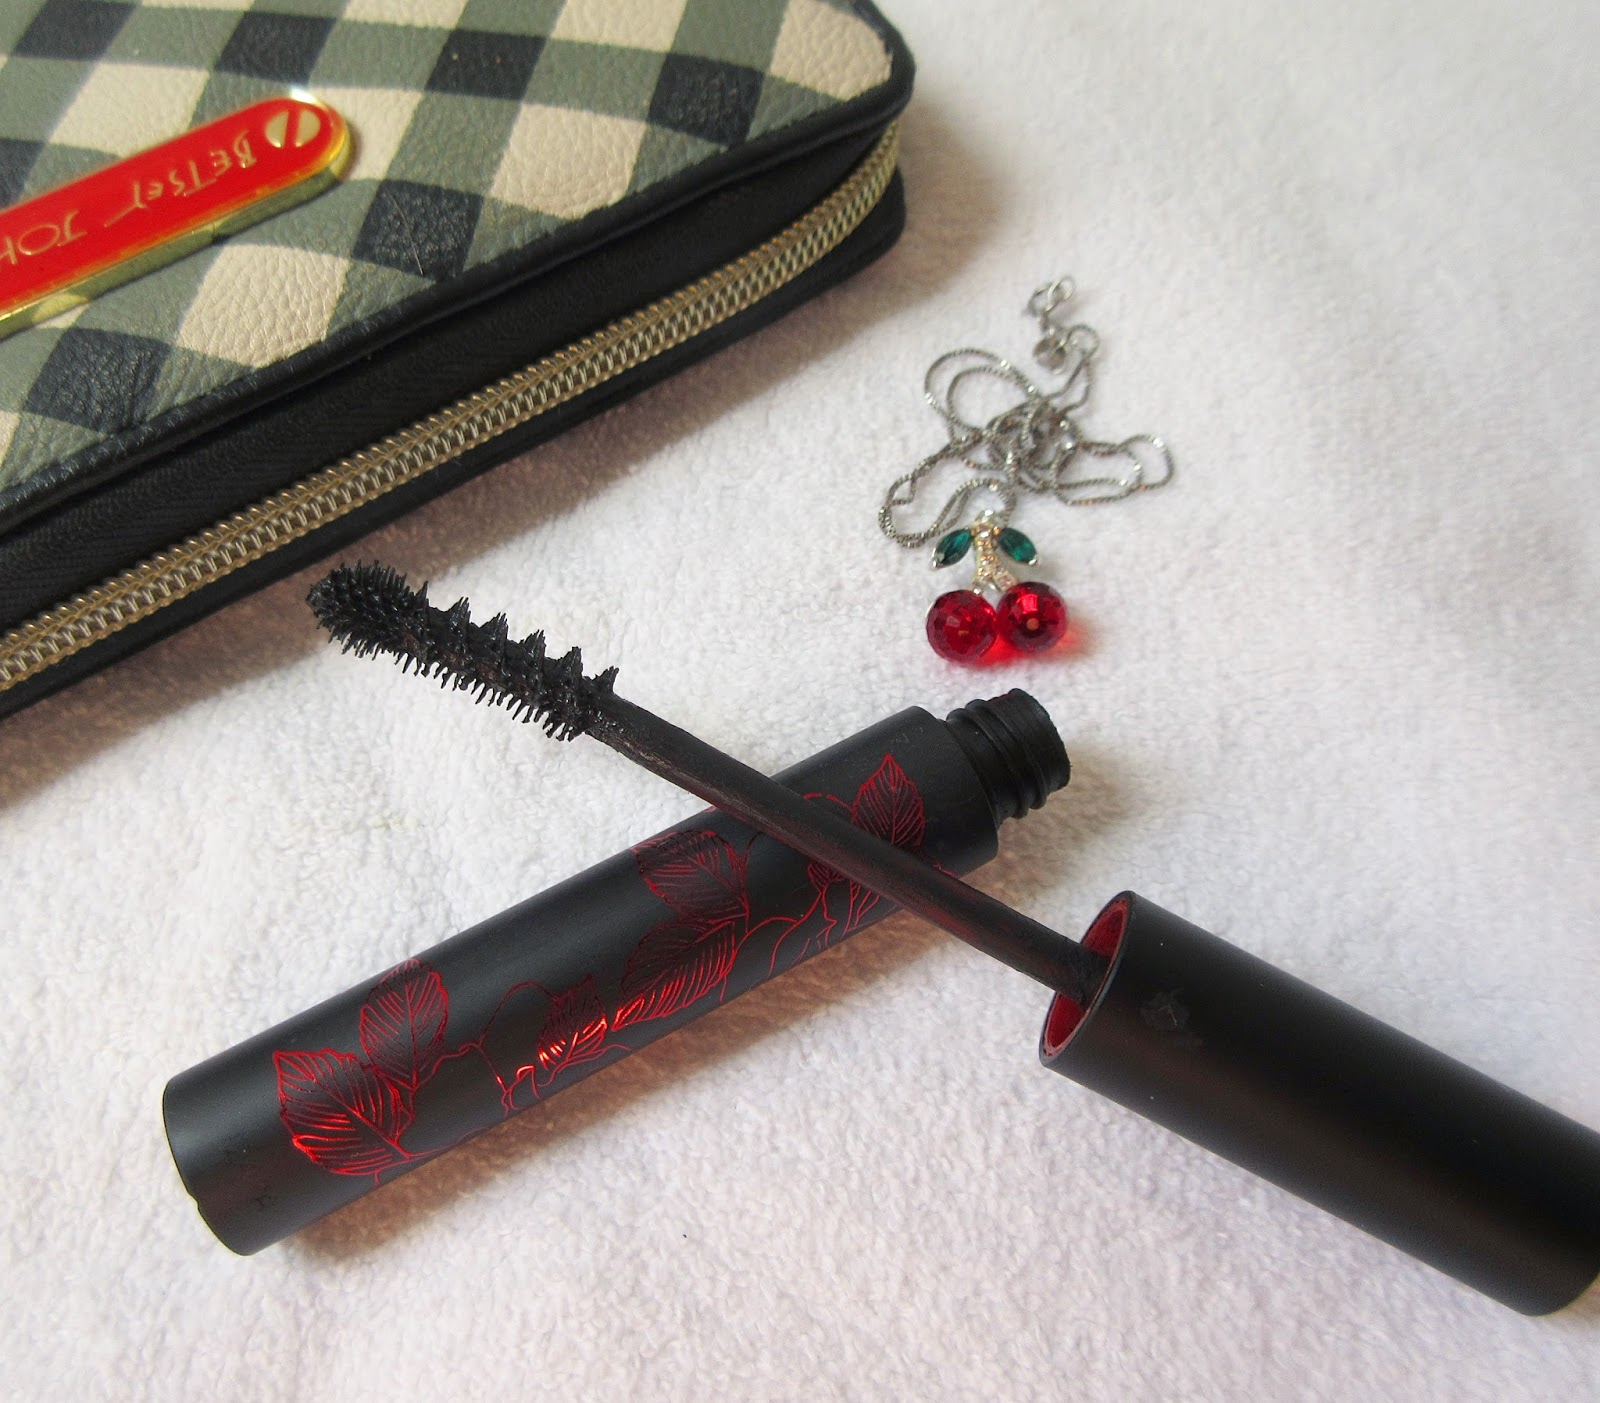 Kat Von D Immortal Lash Mascara Review